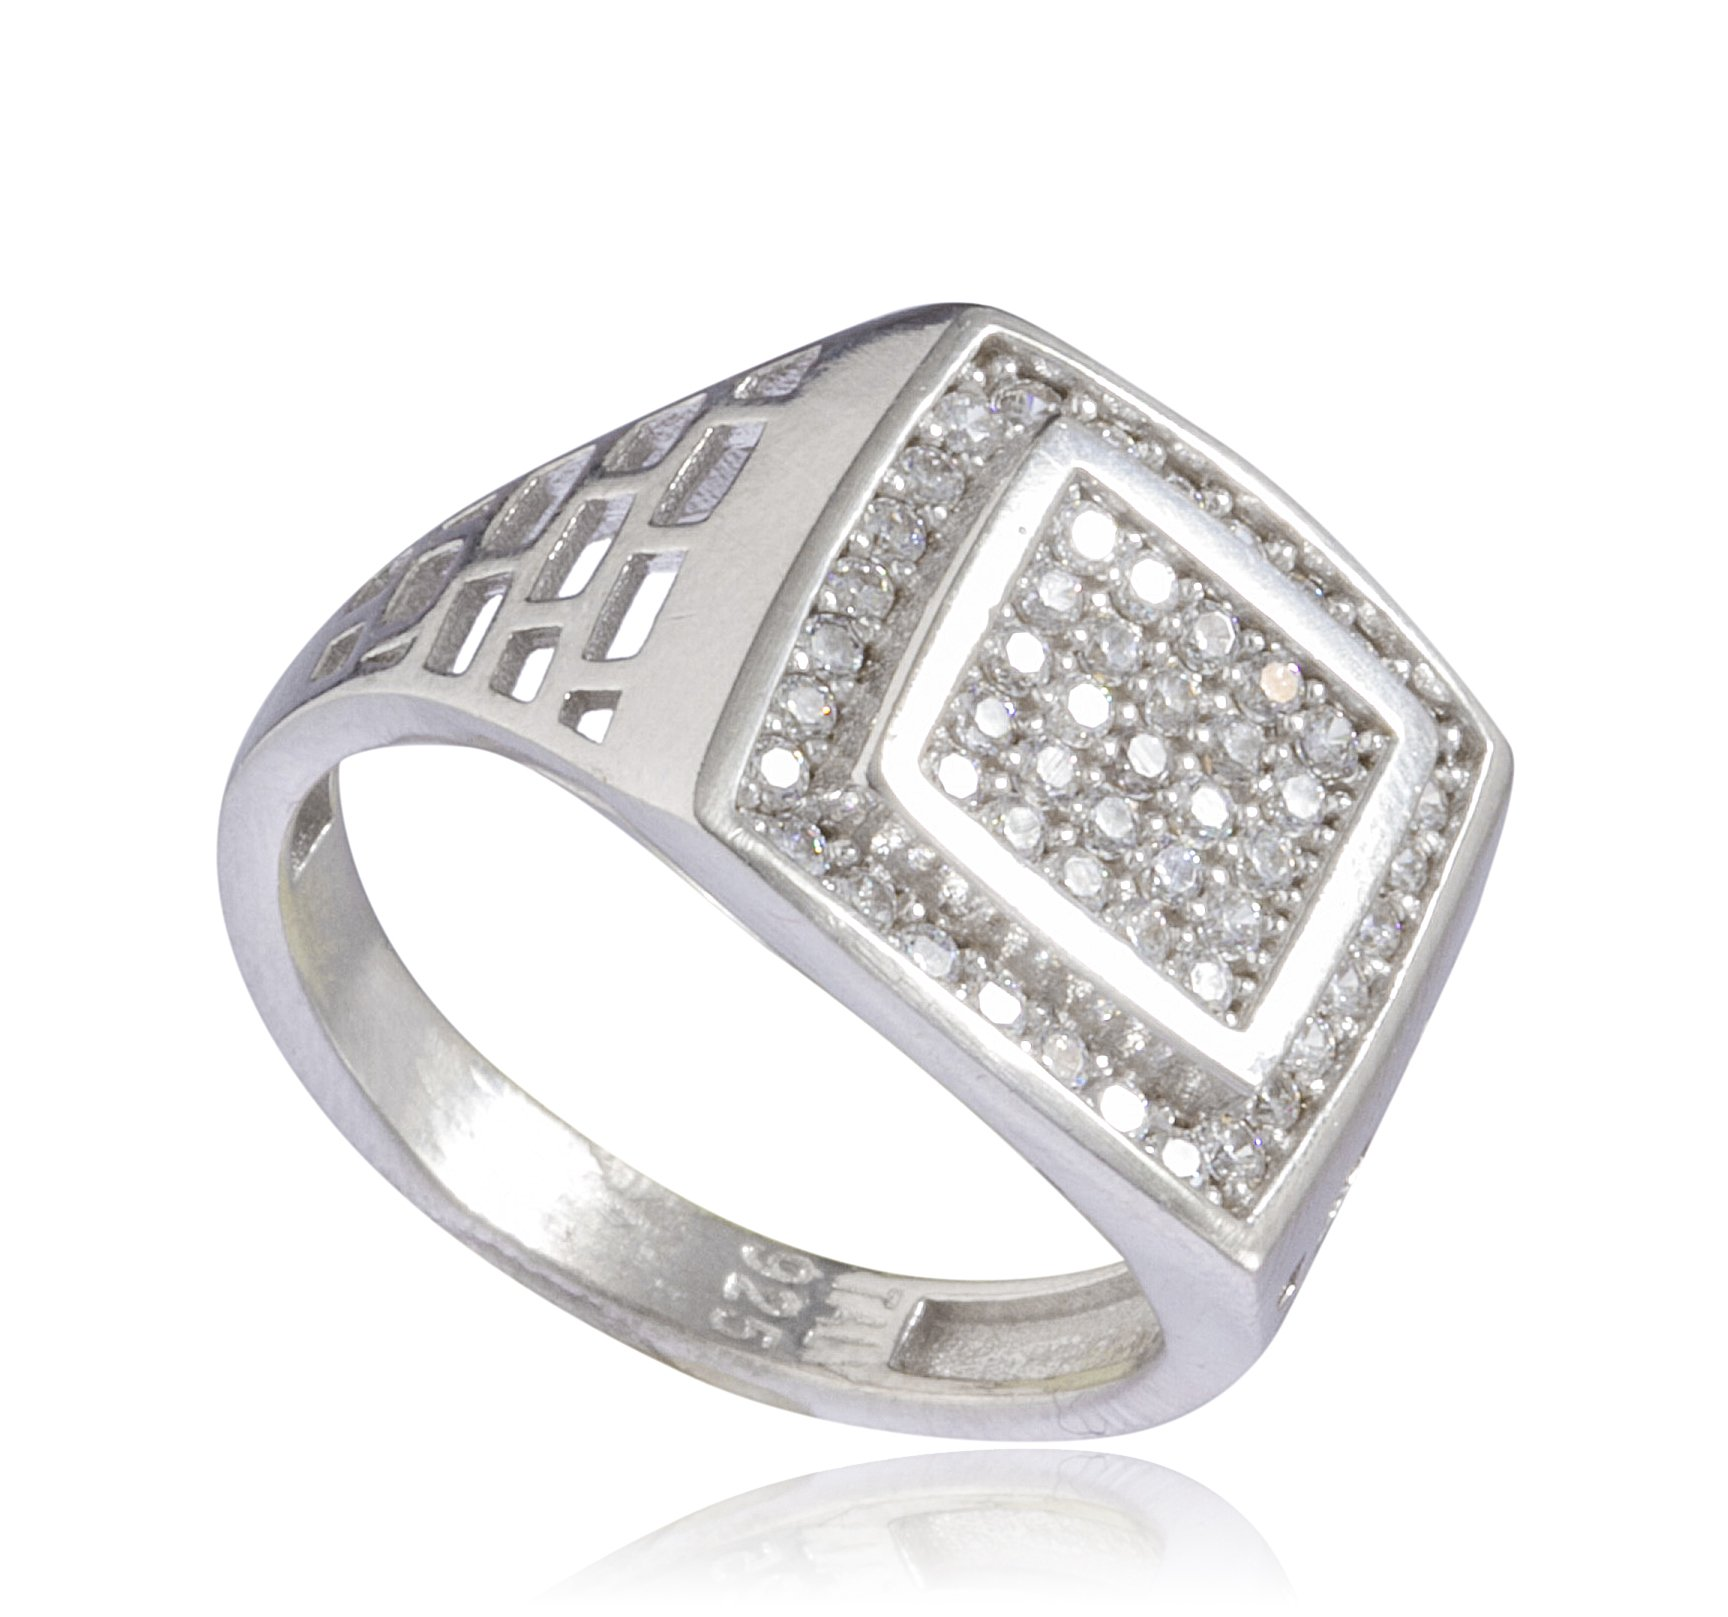 Real 925 Sterling Silver Iced Out Double Square Ring (10)